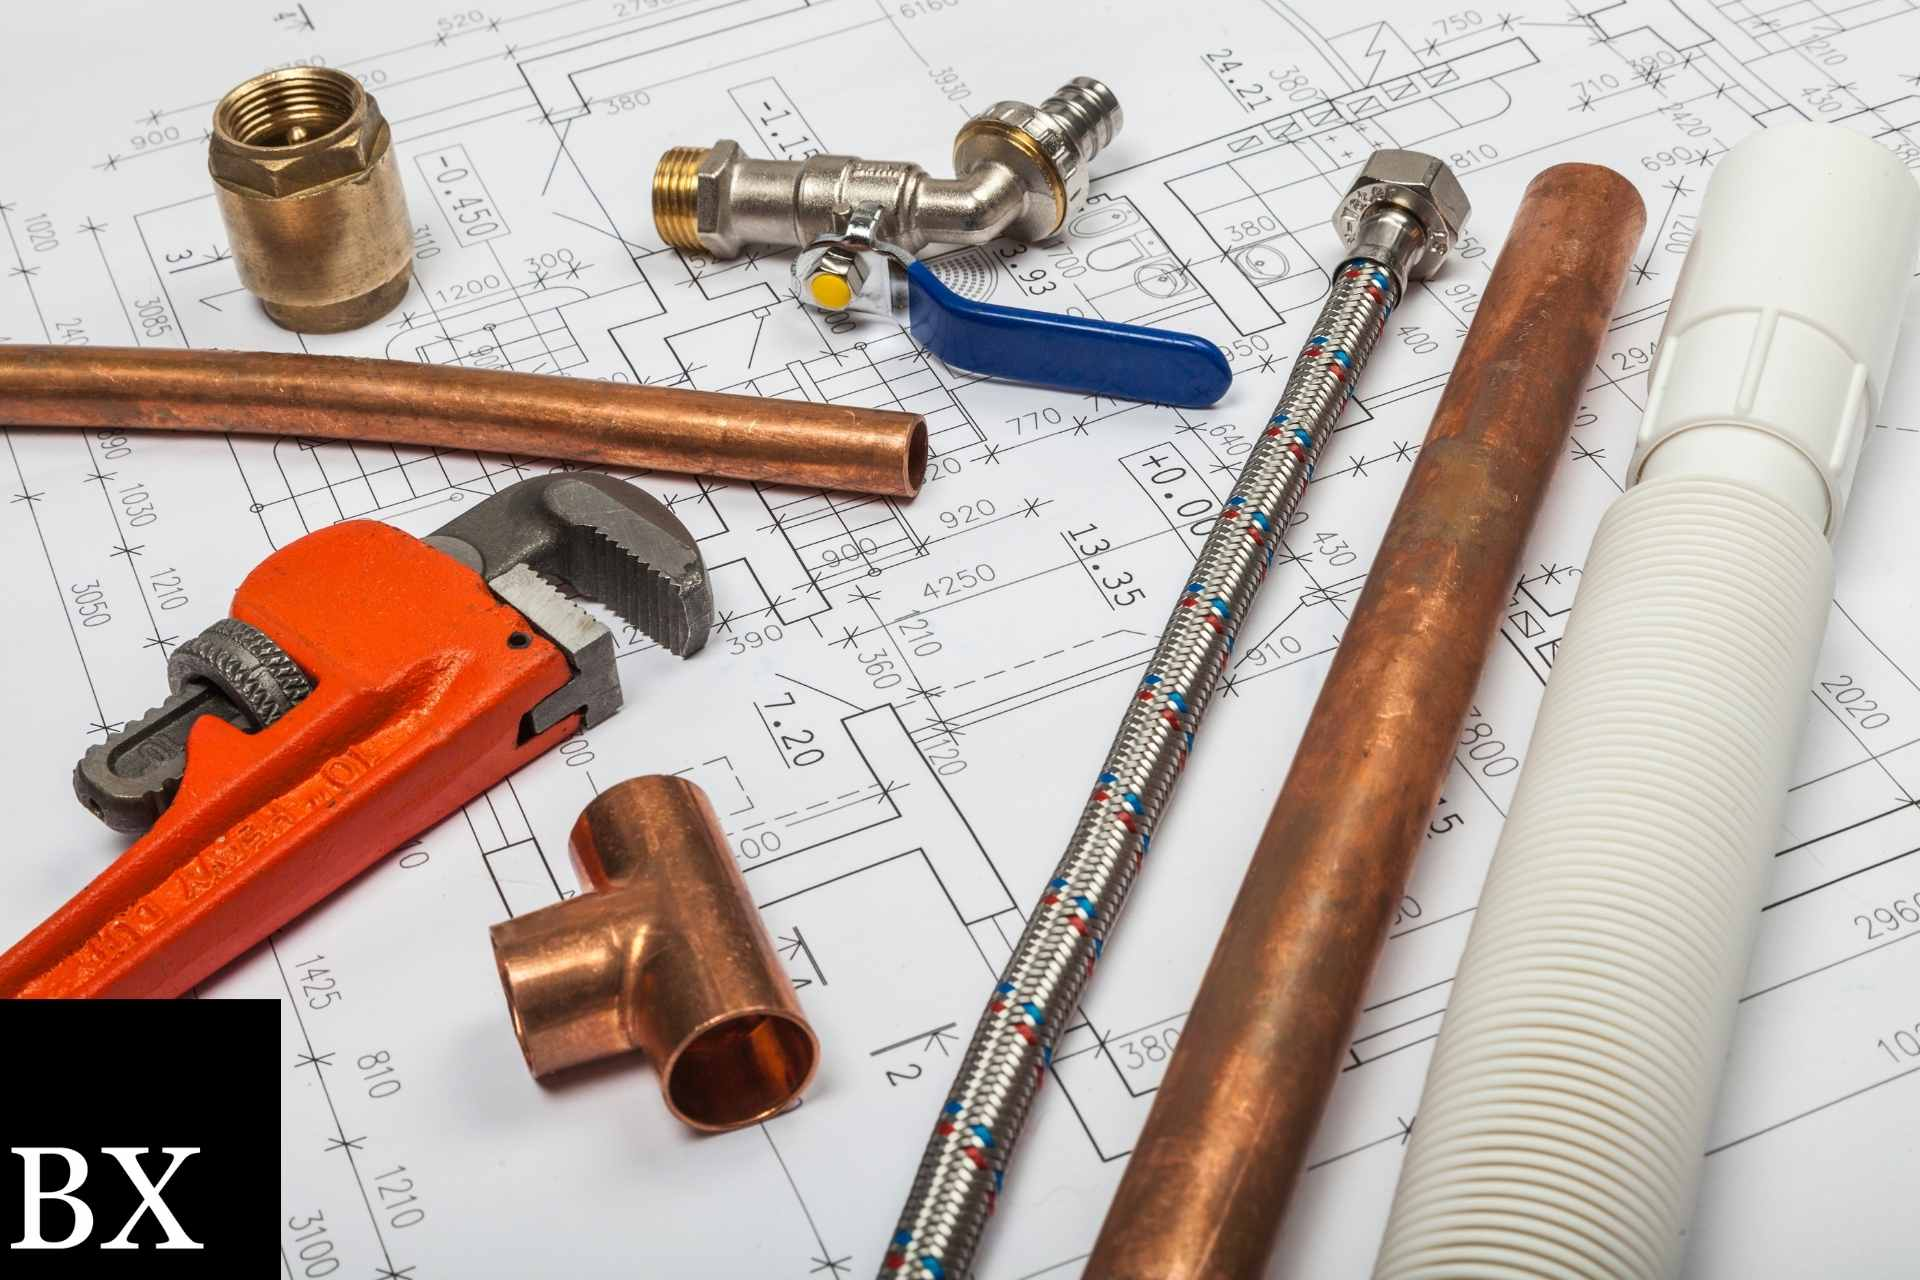 Rhode Island Plumbers and Mechanical Permit Bond